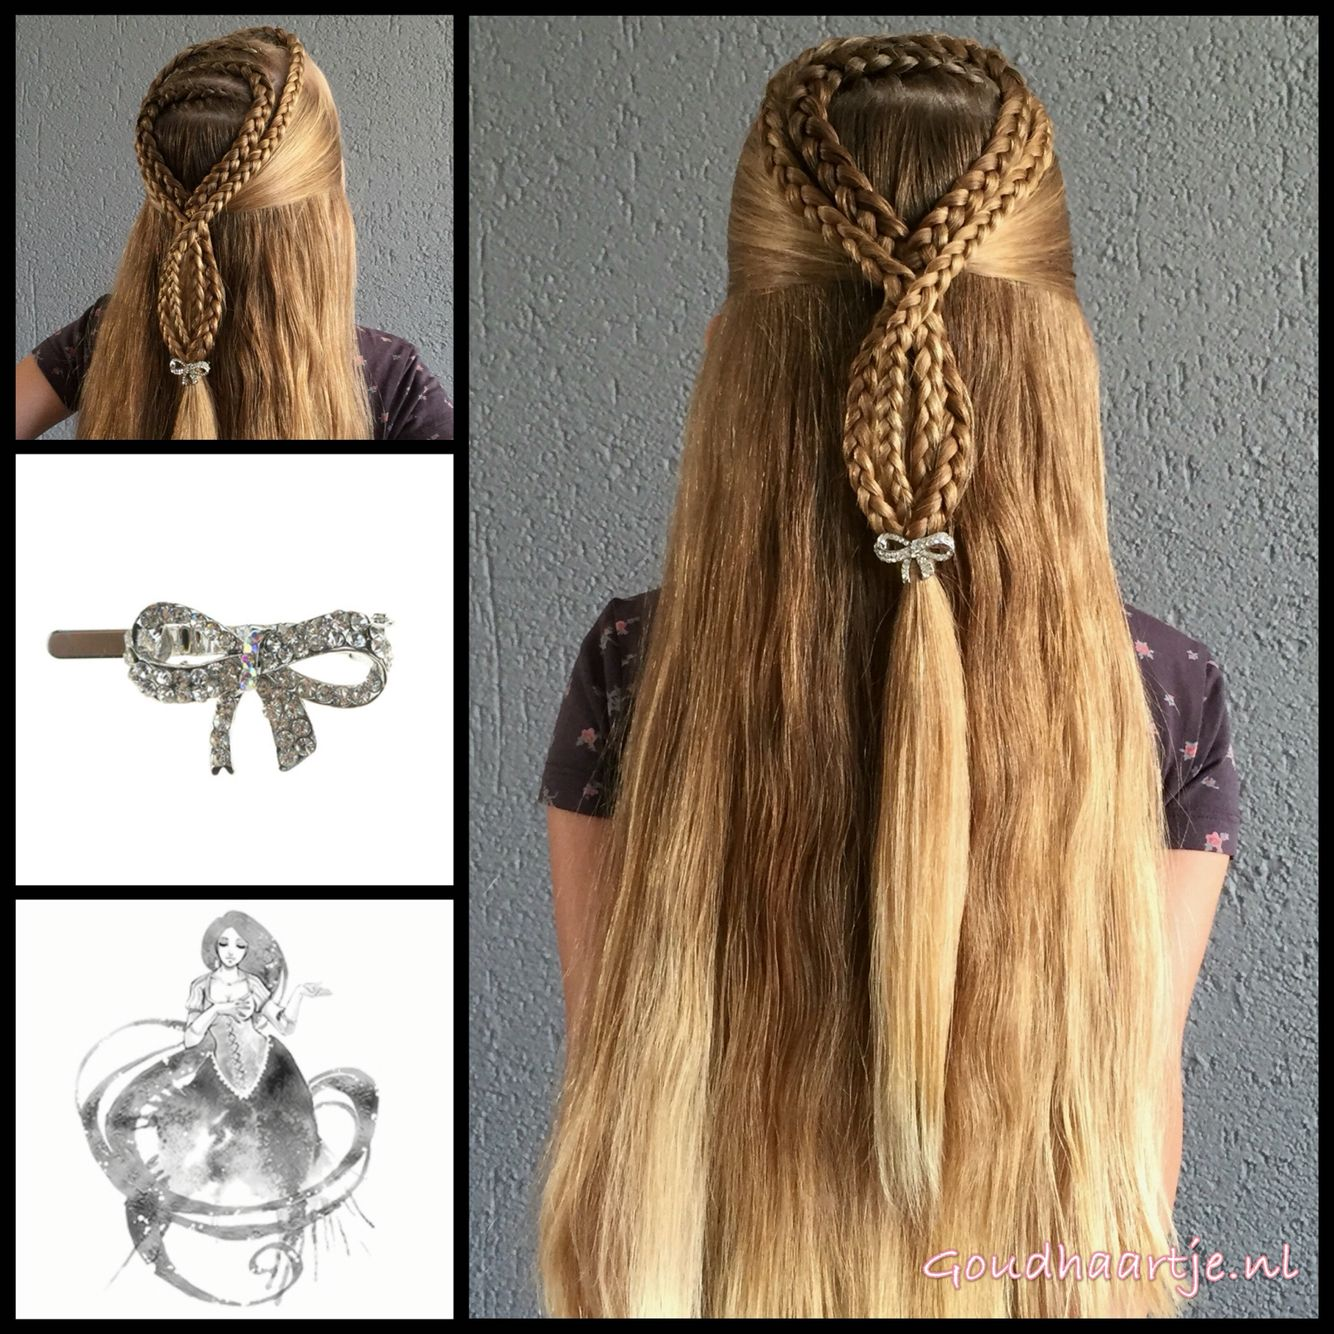 Halfup hairstyle with a cute bow hairclip from the webshop